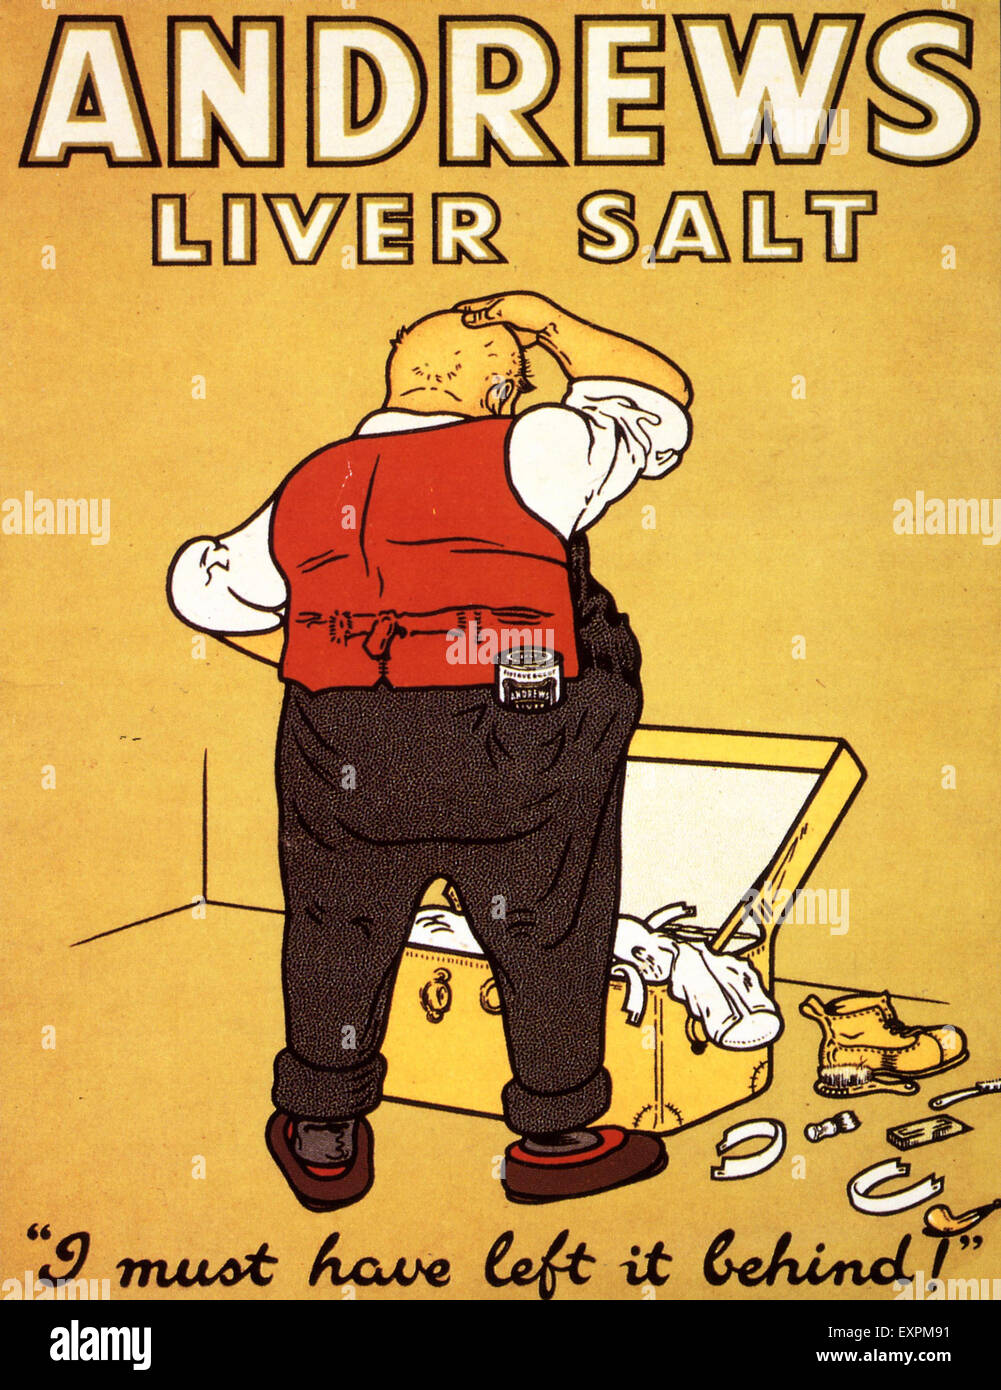 1920s UK Andrews Liver Salt Magazine Advert - Stock Image